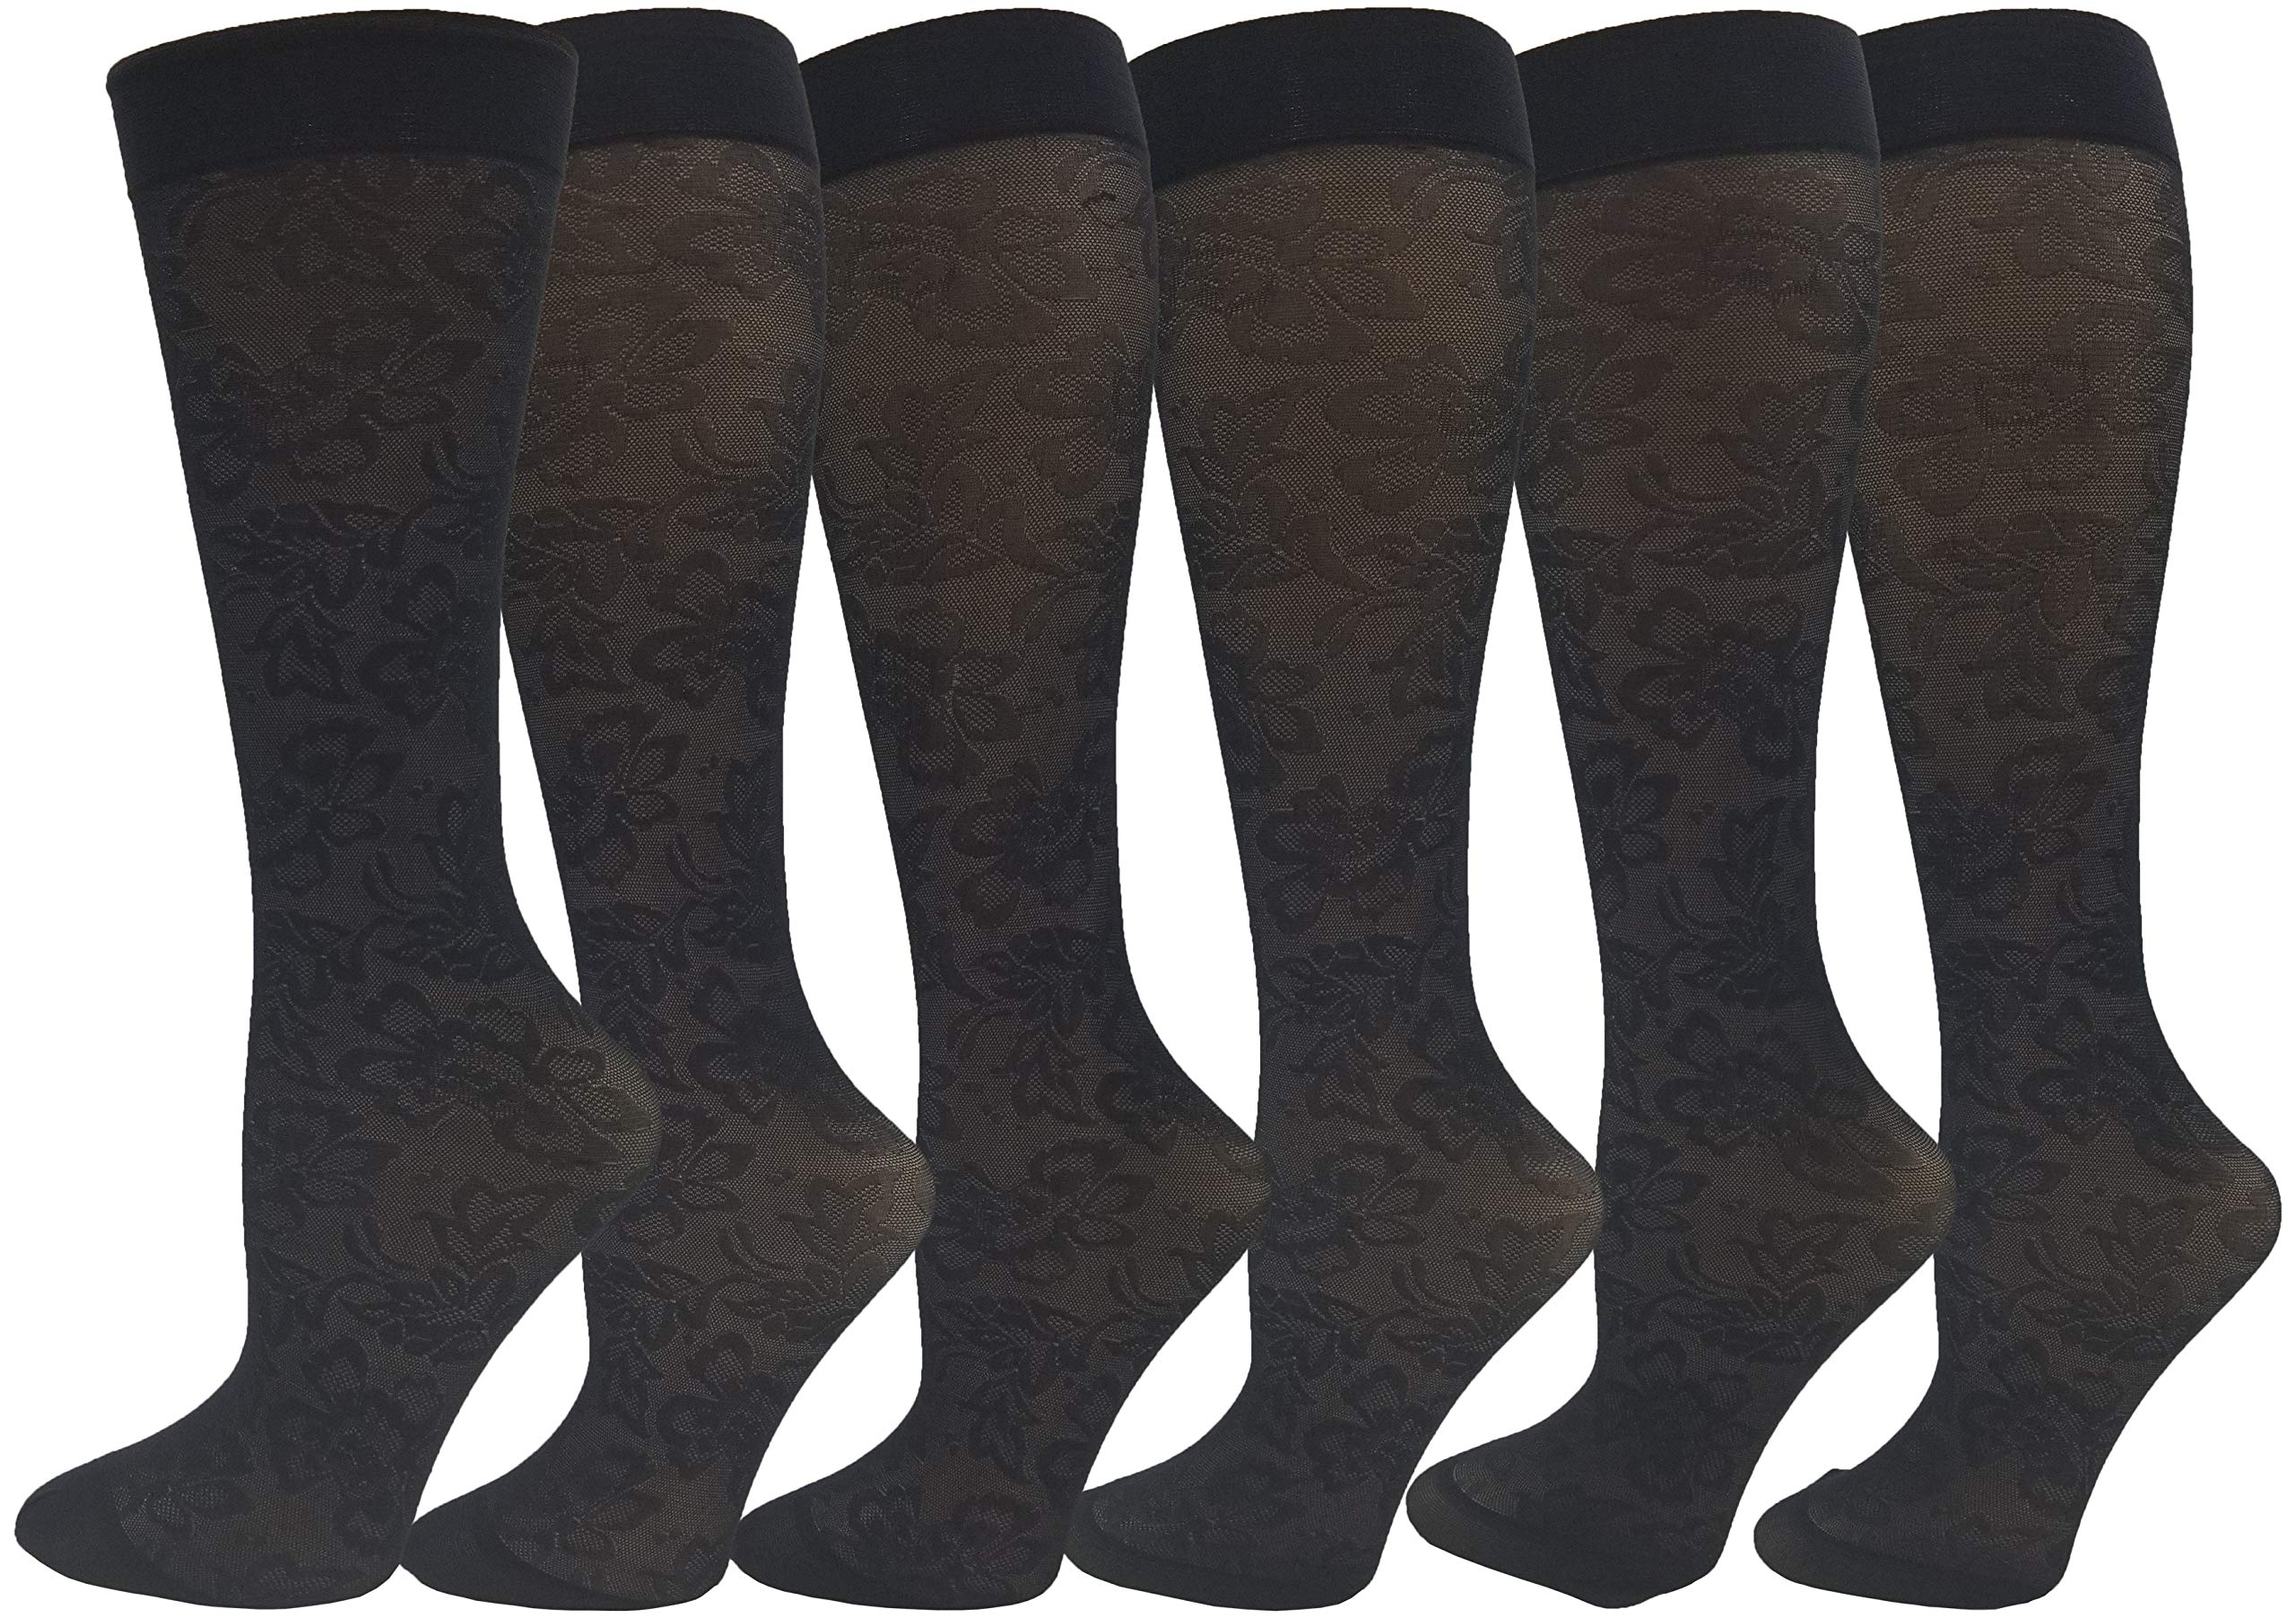 Women's Trouser Socks, 6 Pairs, Opaque Stretchy Nylon Knee High, Many Colors (Black - Floral Patterned)